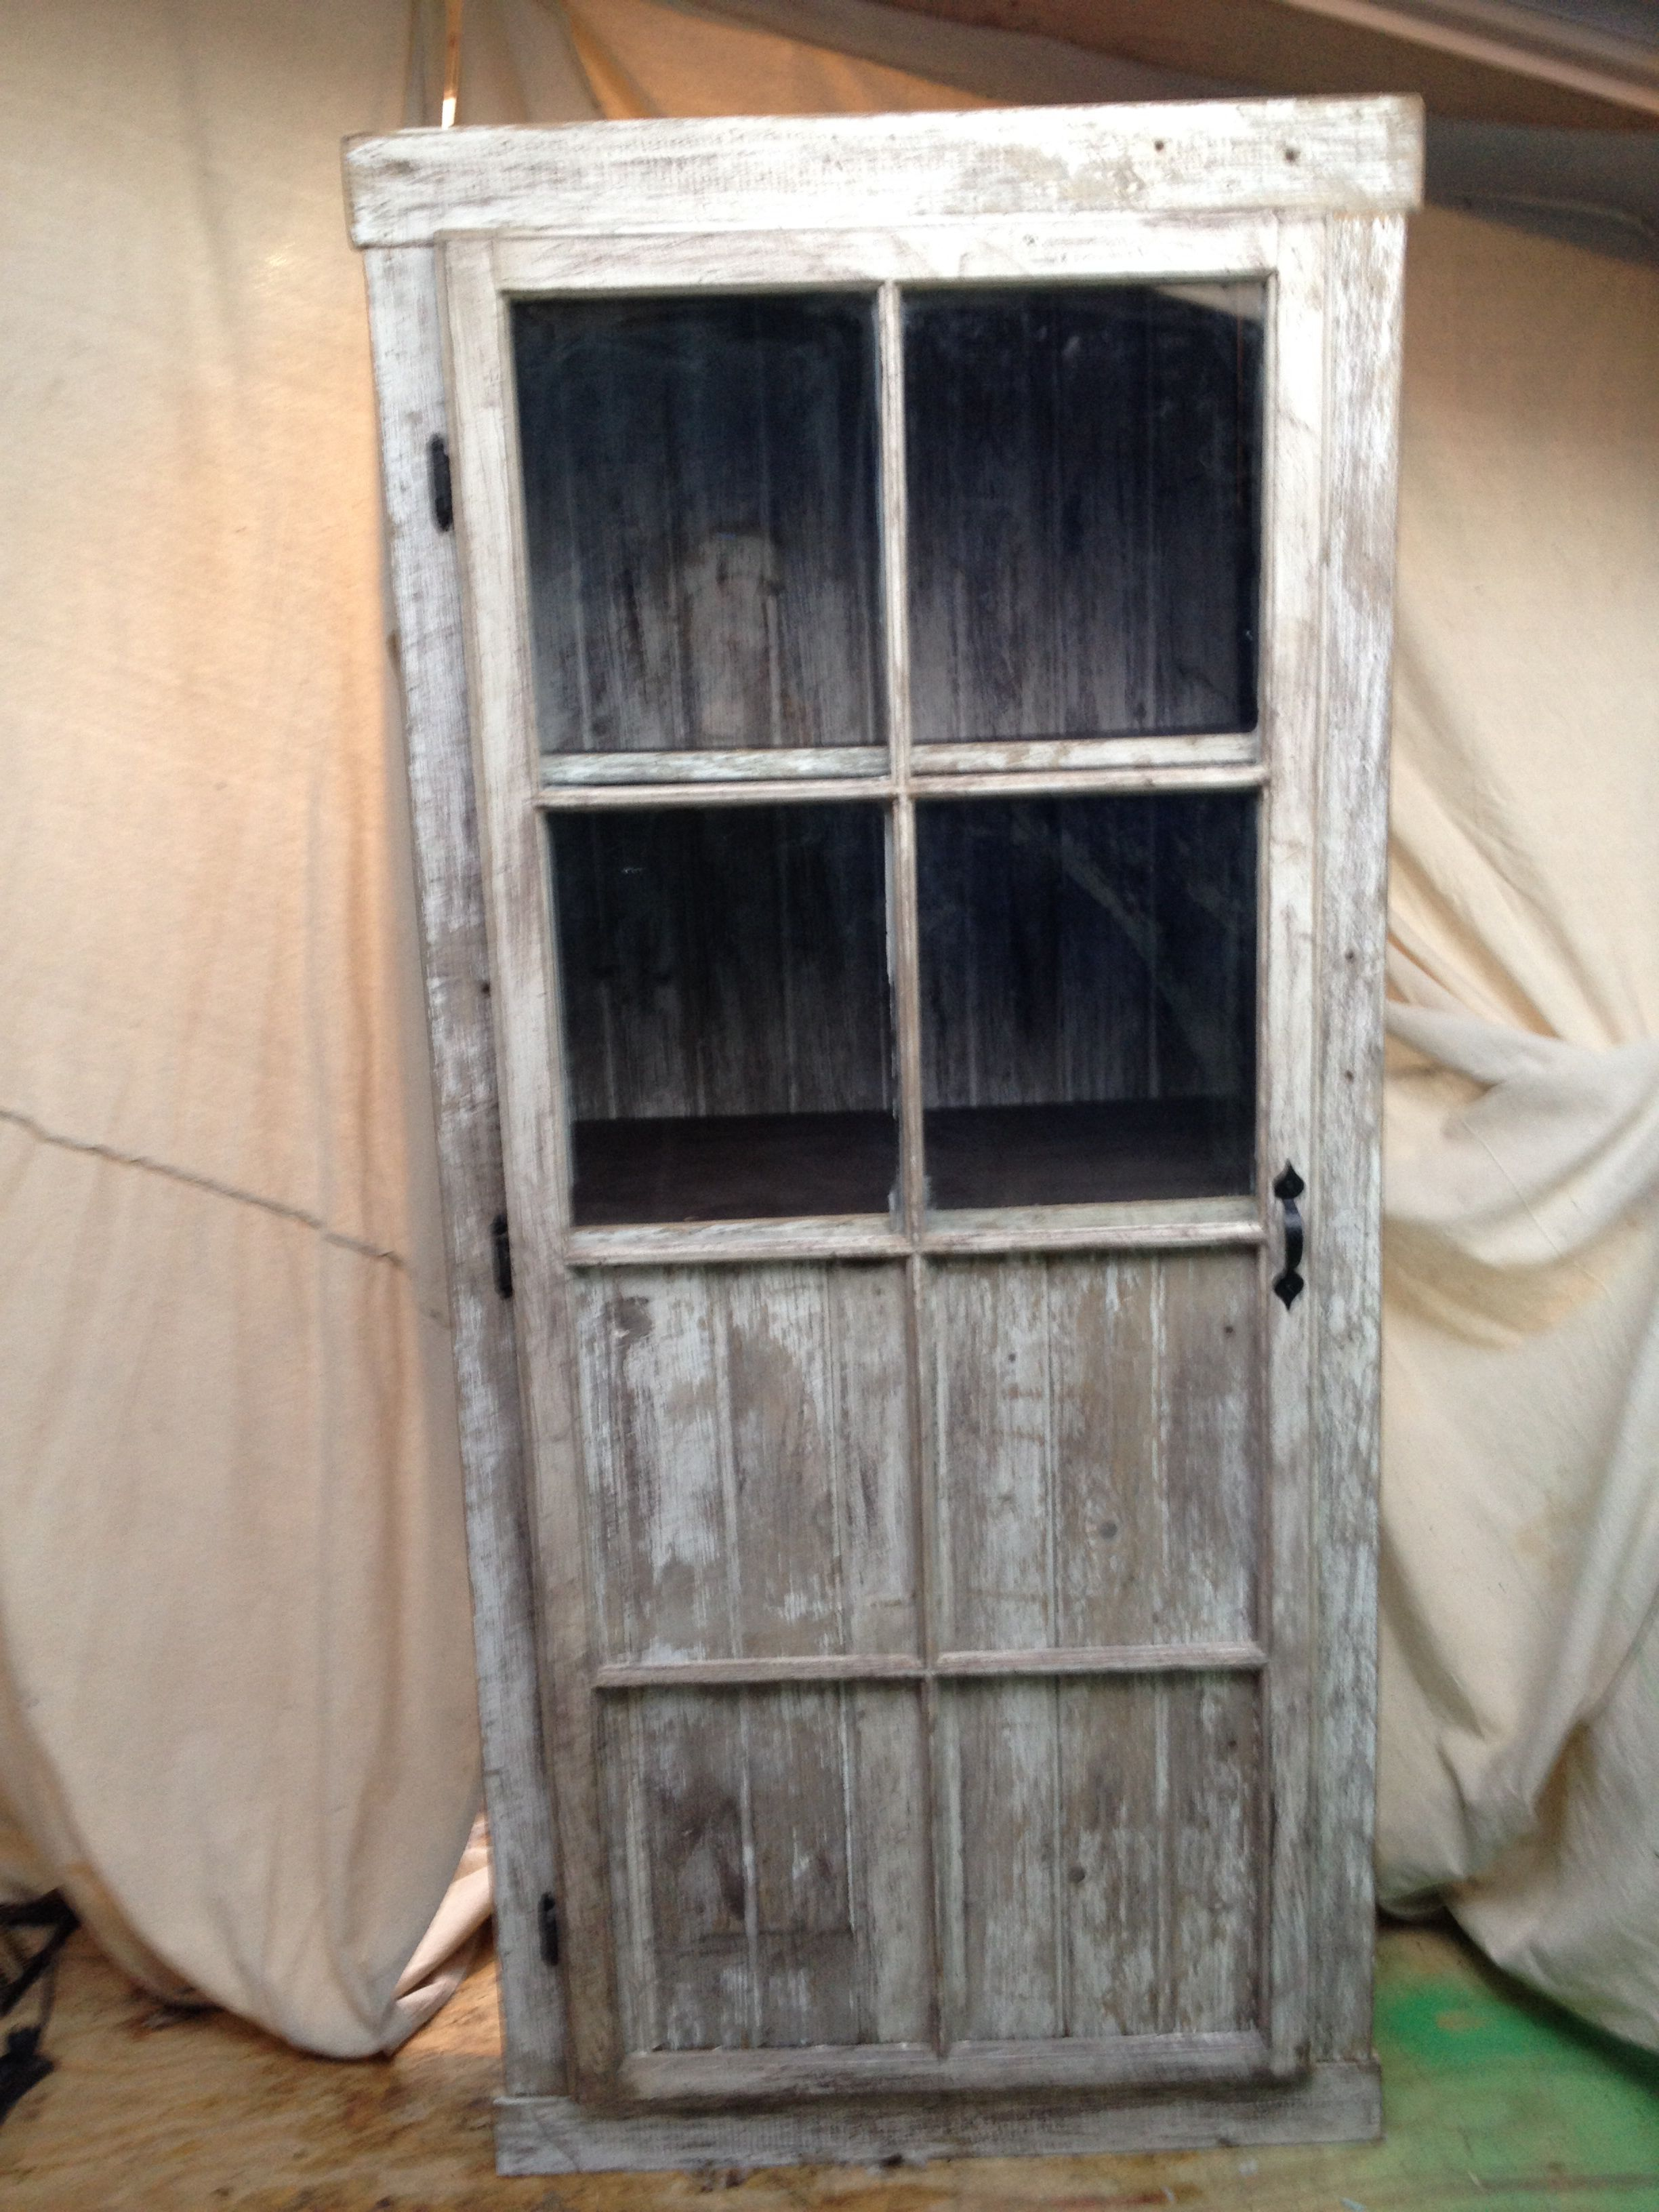 Barn Board Kitchen Cabinets Barn Wood Cabinet With A Repurposed Window Frame Door